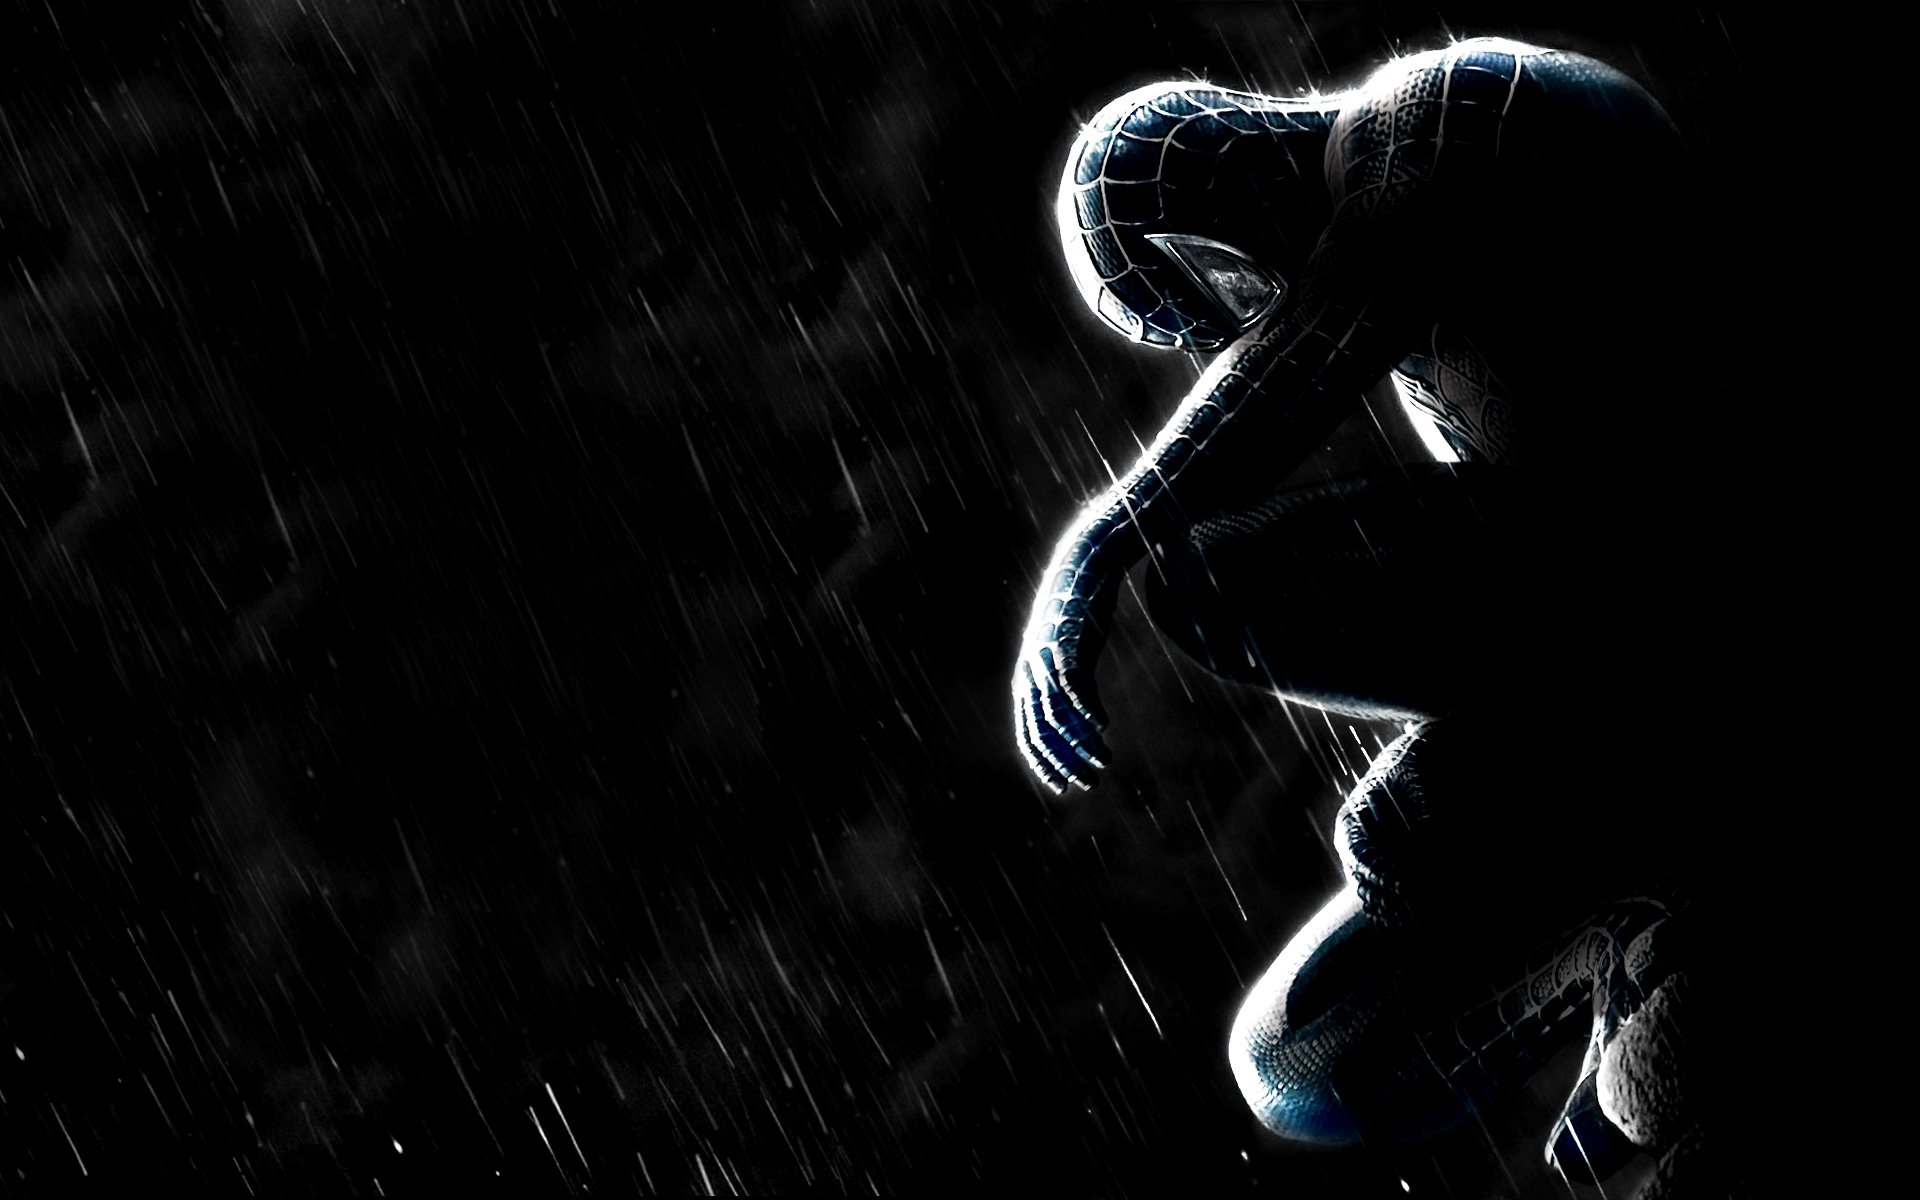 Spider man full hd wallpaper and background image - Black and white spiderman wallpaper ...